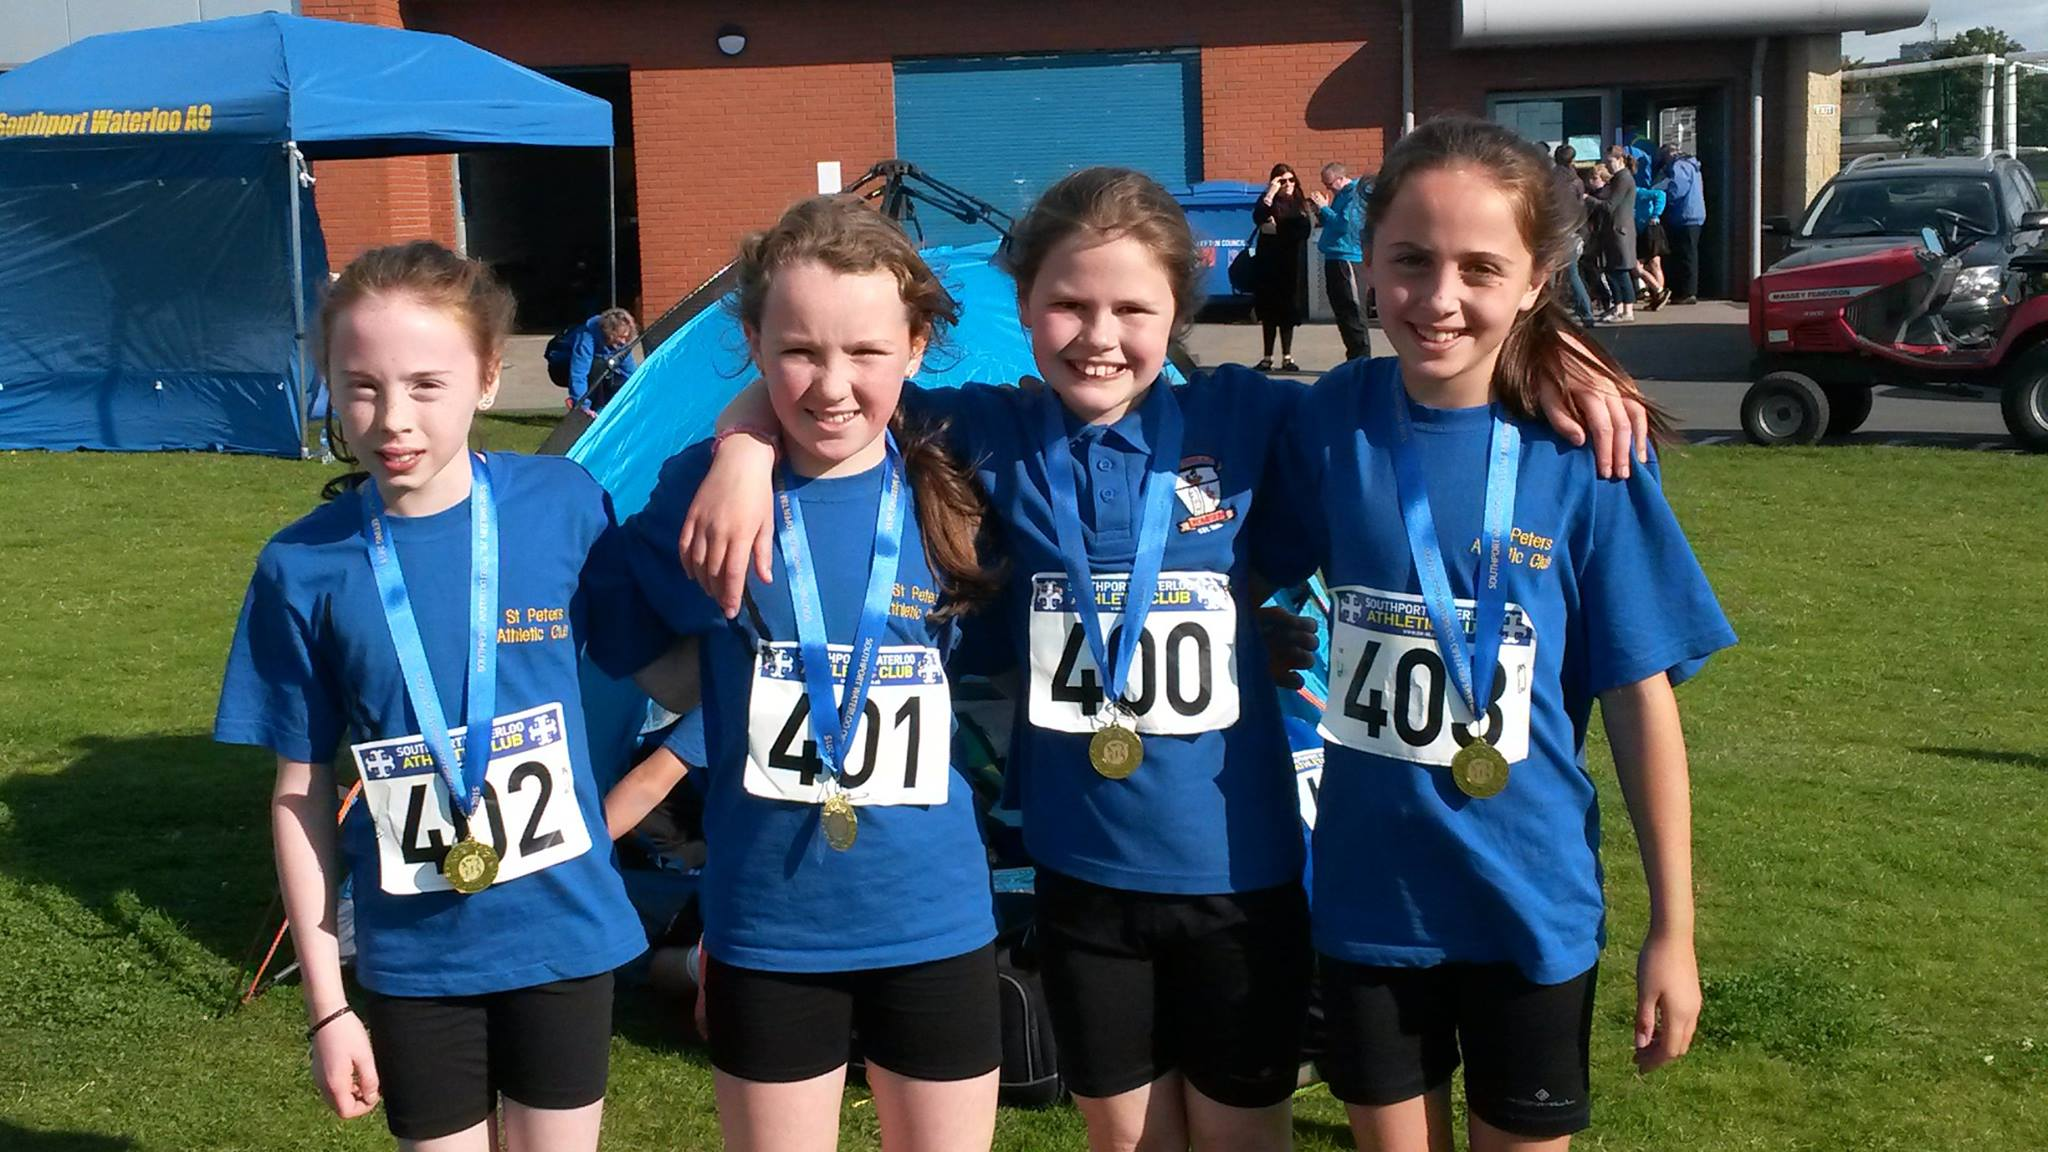 St Peter's AC U11 Girls' 4x100m team at Southport Waterloo AC Open Meet (Liverpool, September 2015)